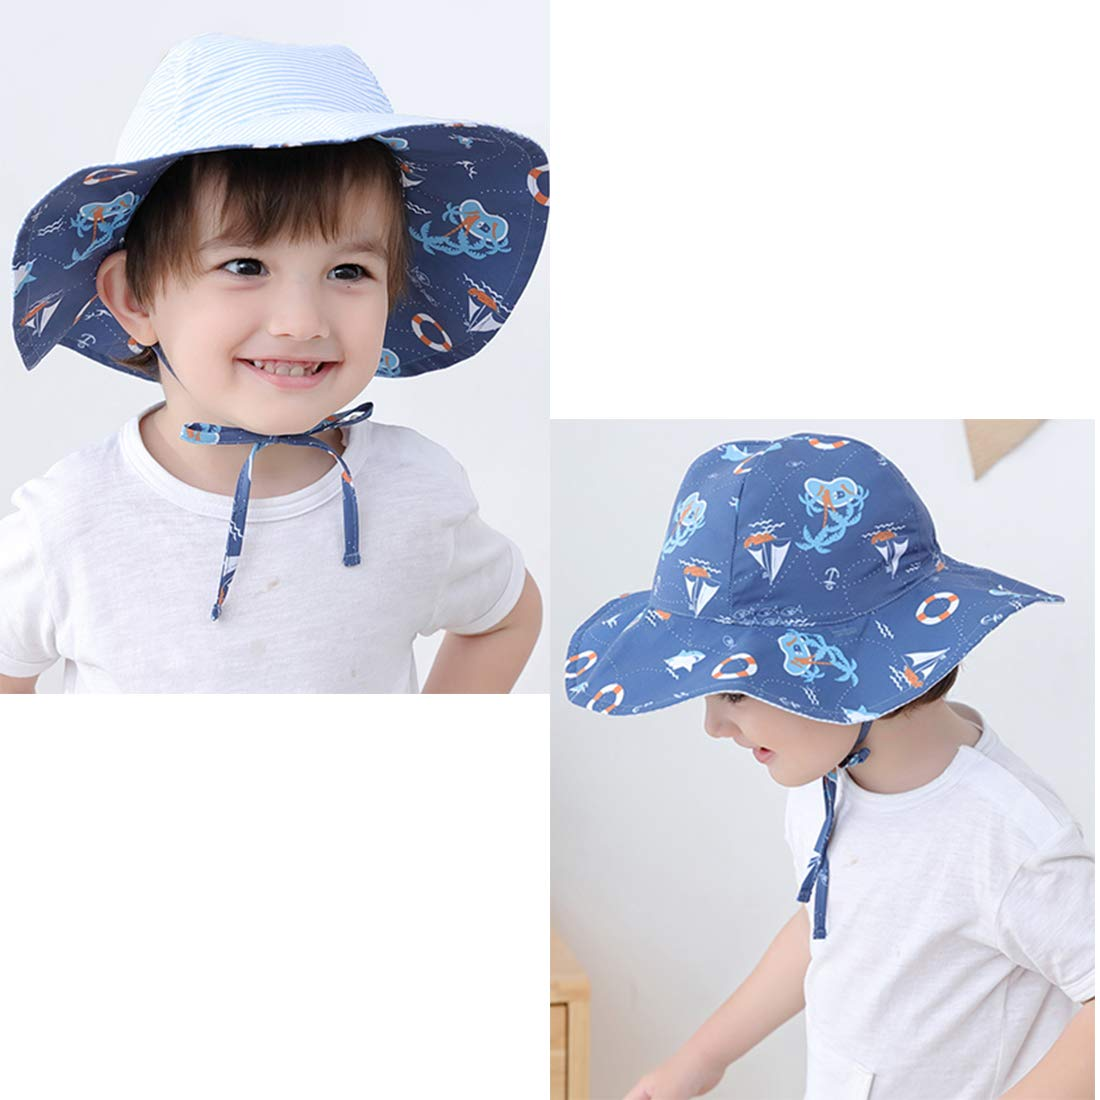 Baterflyo Baby Toddler Boy Beach Sun Hat Large Brim UPF 50 Stay-on Sun Protection Summer Sunhat with Strap